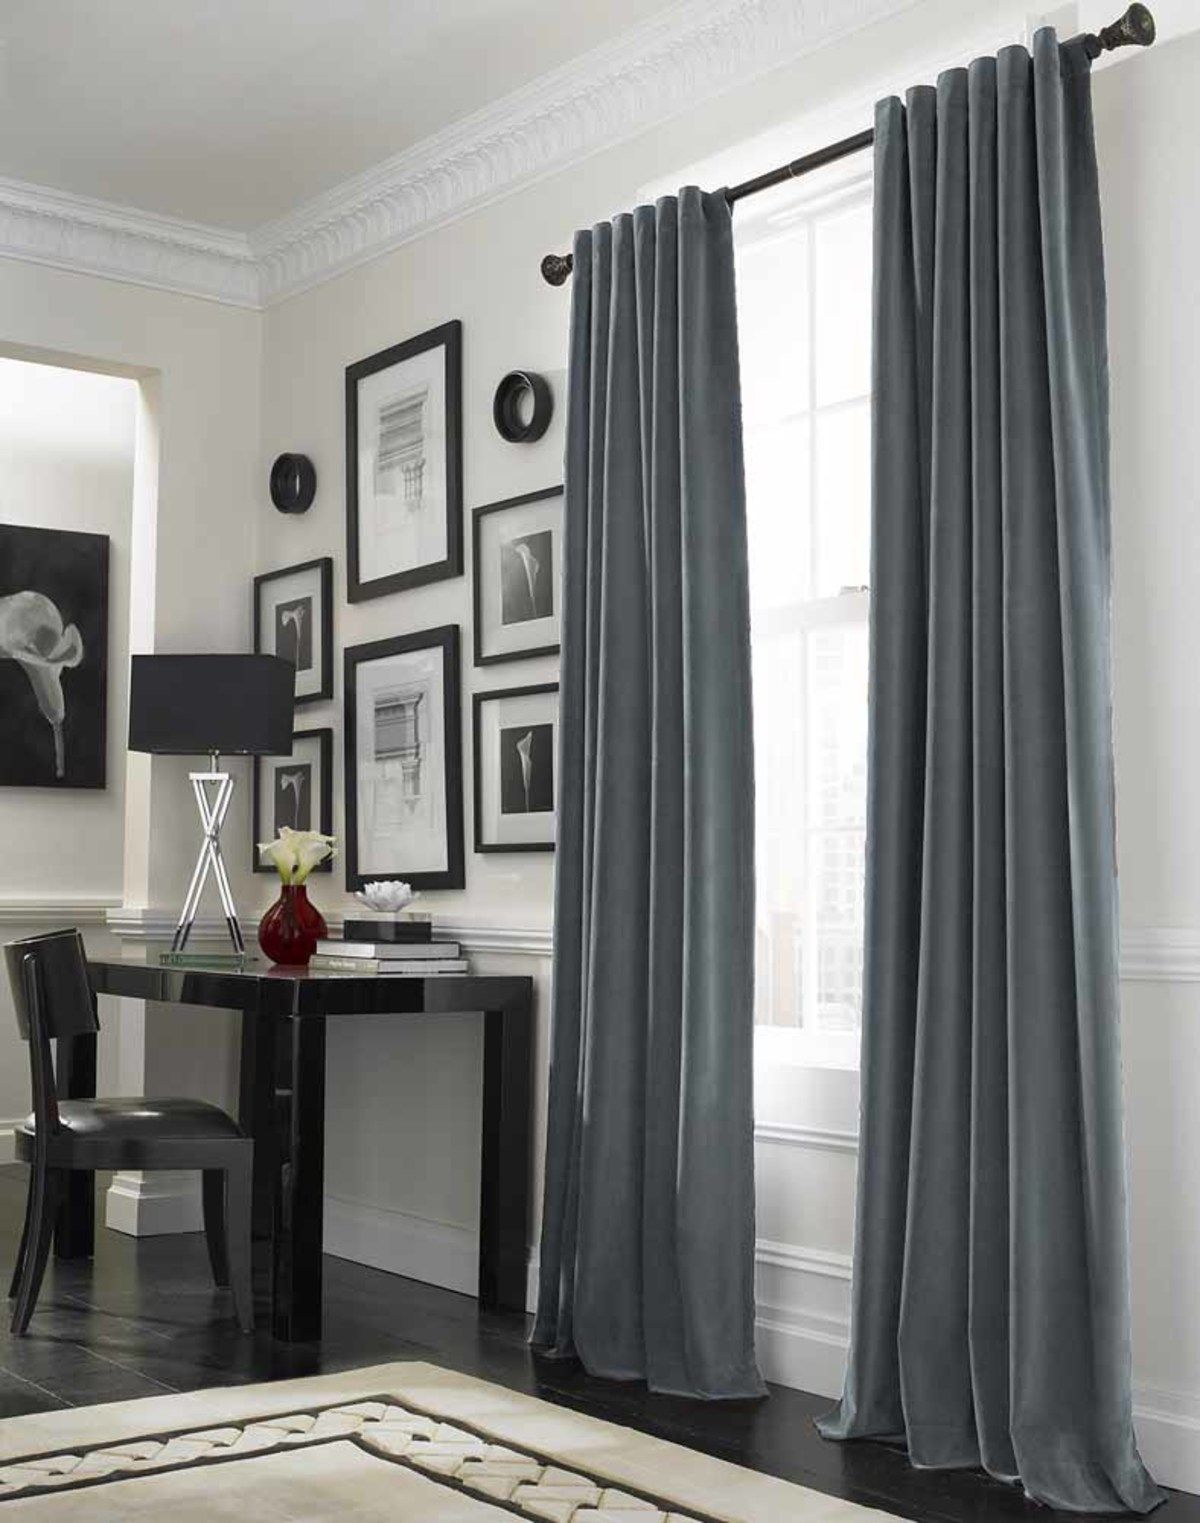 Interior Designs Stunning Curtain Ideas For Large Window Design With Beautiful G Curtains For Grey Walls Curtain Designs For Bedroom White Curtains Grey Walls